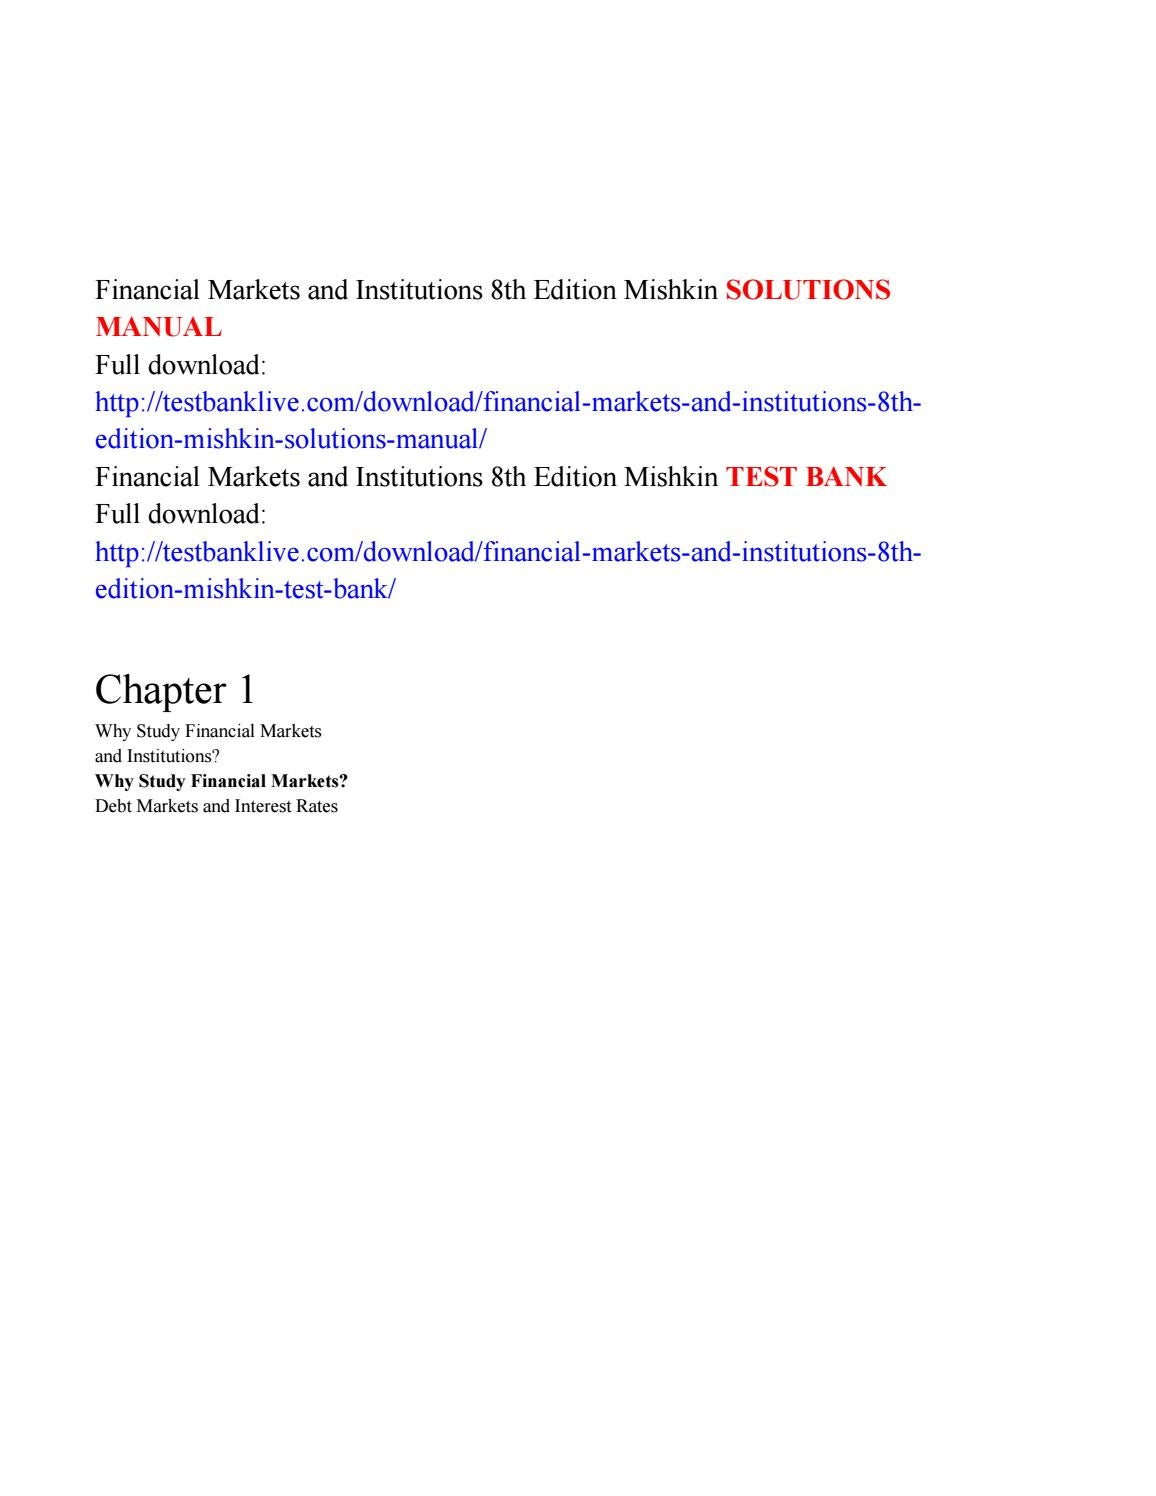 Financial markets and institutions 8th edition mishkin solutions manual by  Brigham333 - issuu